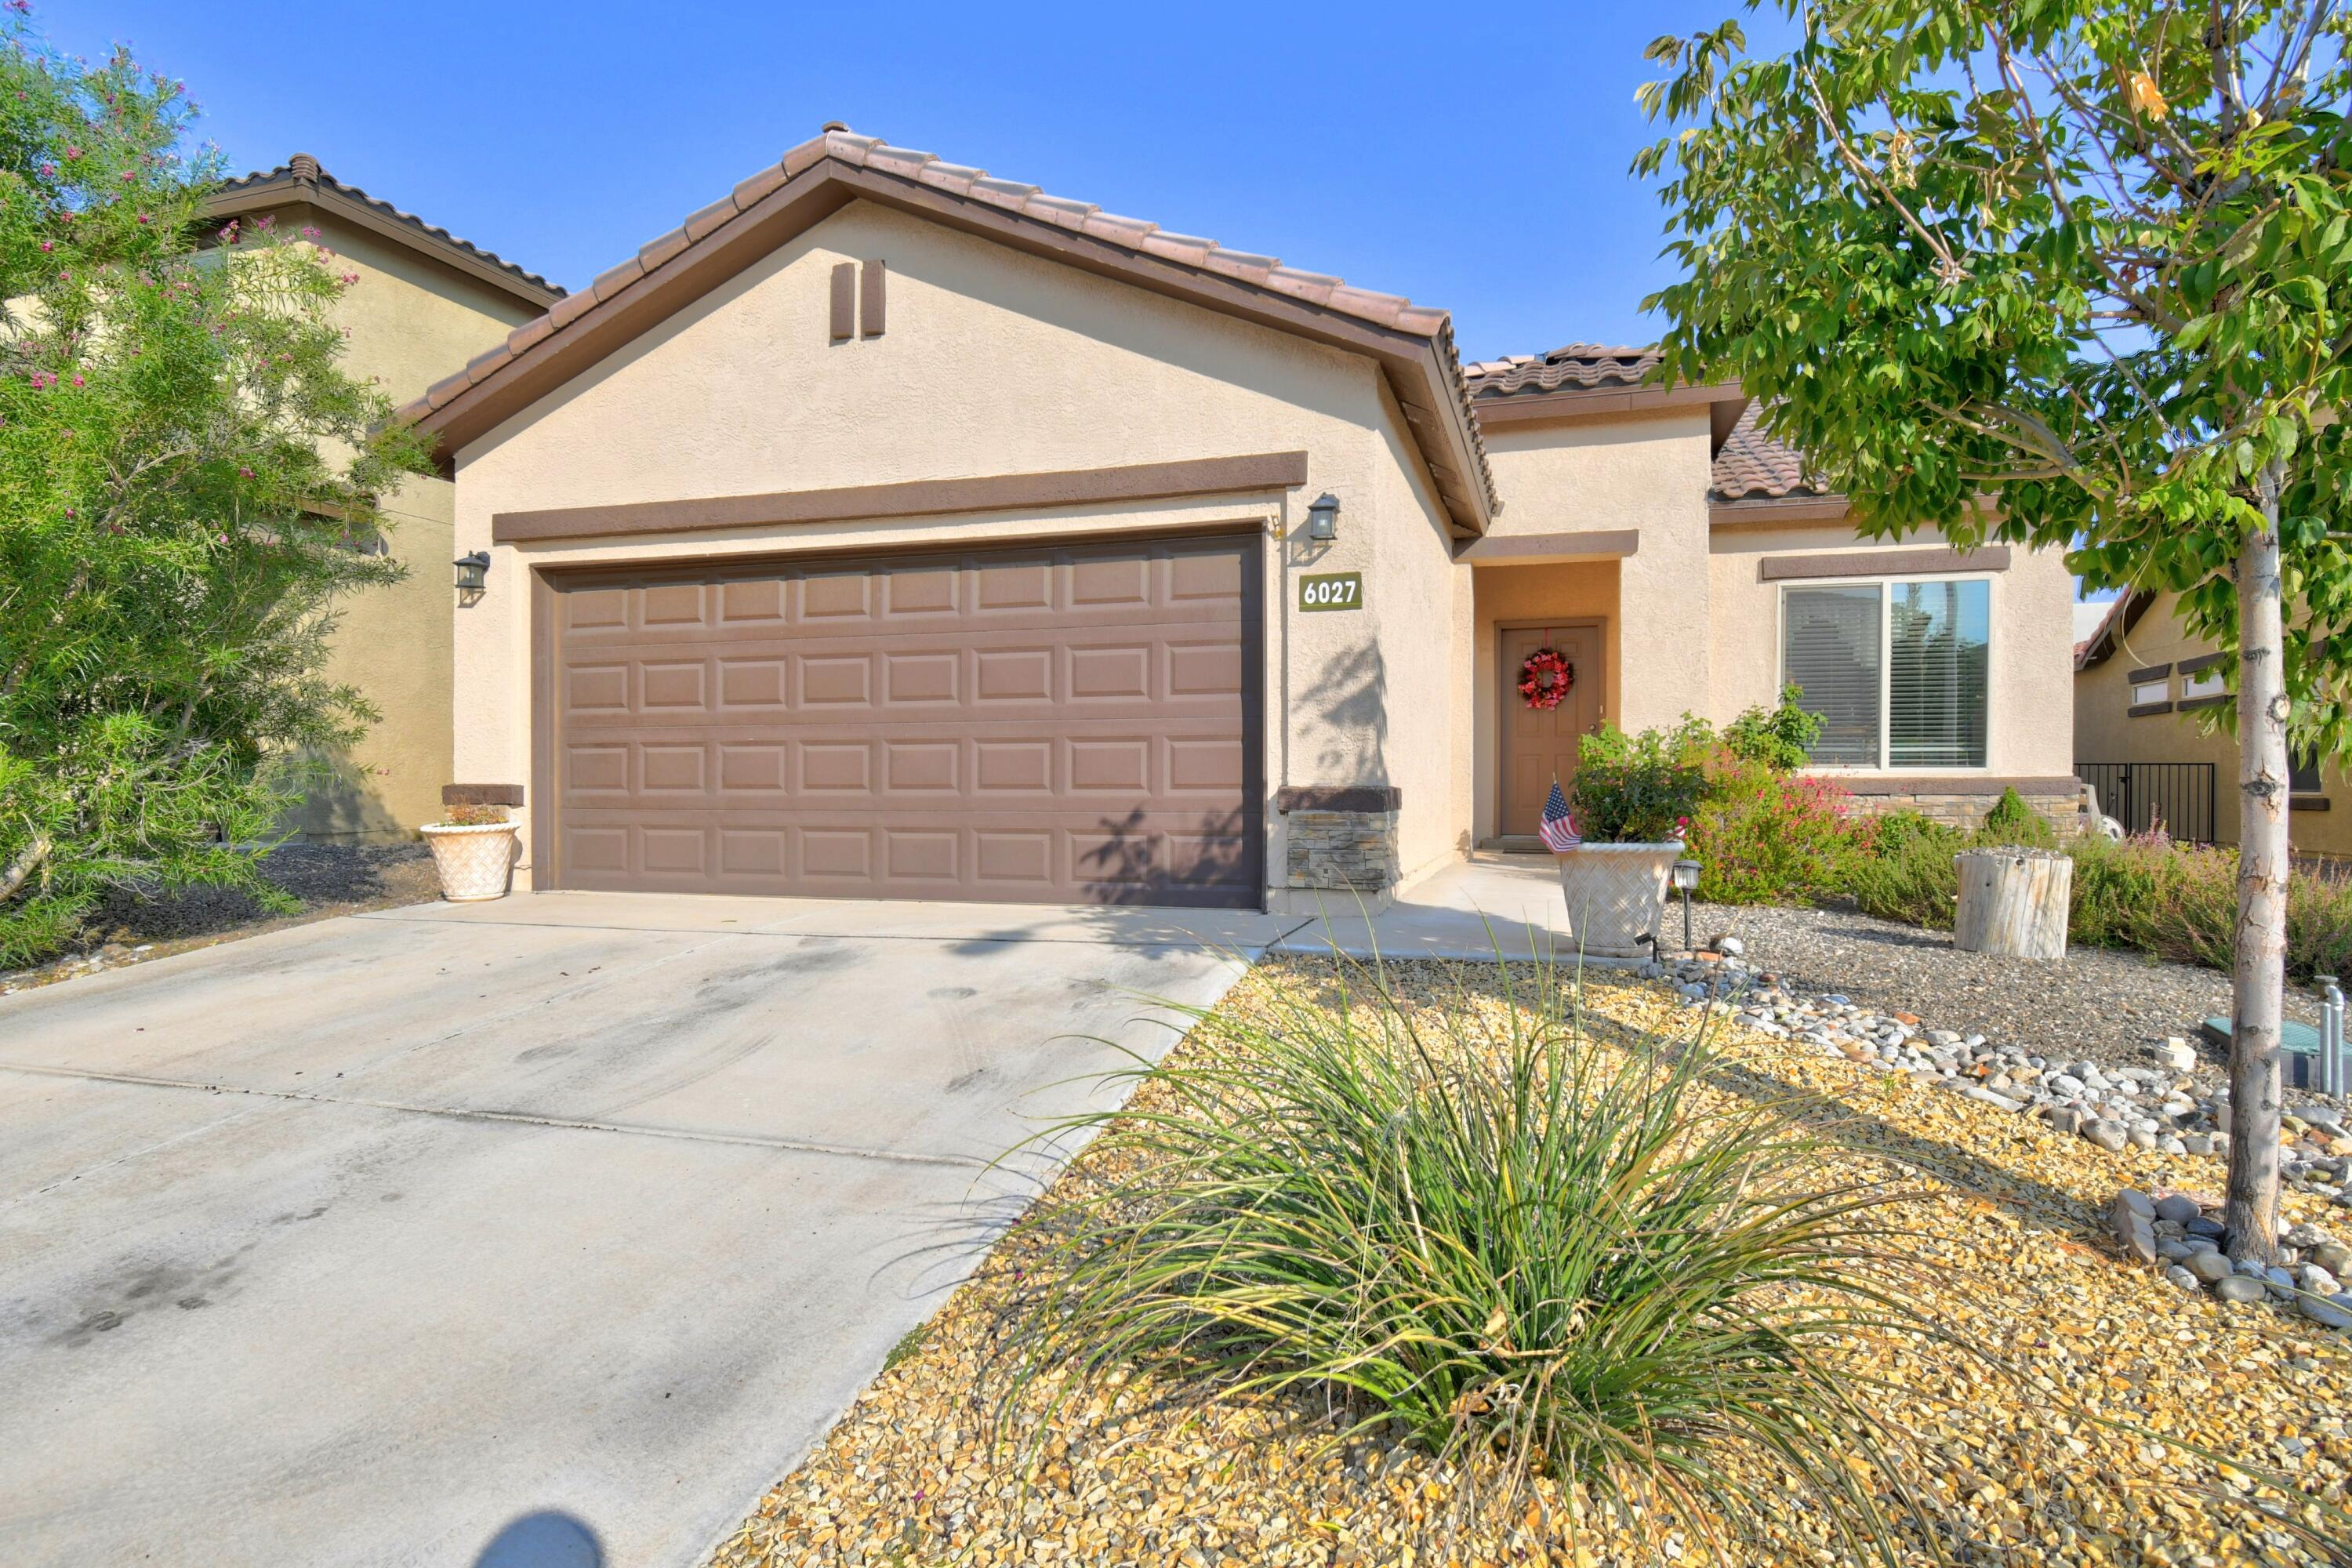 Pulte home in The Boulders subdivision features three bedrooms, two bathrooms, stainless steel appliances, granite countertops, bar in kitchen that overlooks the family room, covered patio in the backyard that has synthetic grass and is  xeriscaped , two car garage, and a tankless water heater.  Tile throughout the house except for the bedrooms.  Master bathroom has a shower and two sinks plus a large walk-in closet.   Main bathroom has two sinks and a tub. Near Paradise  Hills Community Center. Two nice parks in the subdivision and a large park across Paradise Road.  VA loan  is assumable if you qualify. Do not have to be a Veteran.If it sounds like something you would like, make an appointment to see it and make it your own.